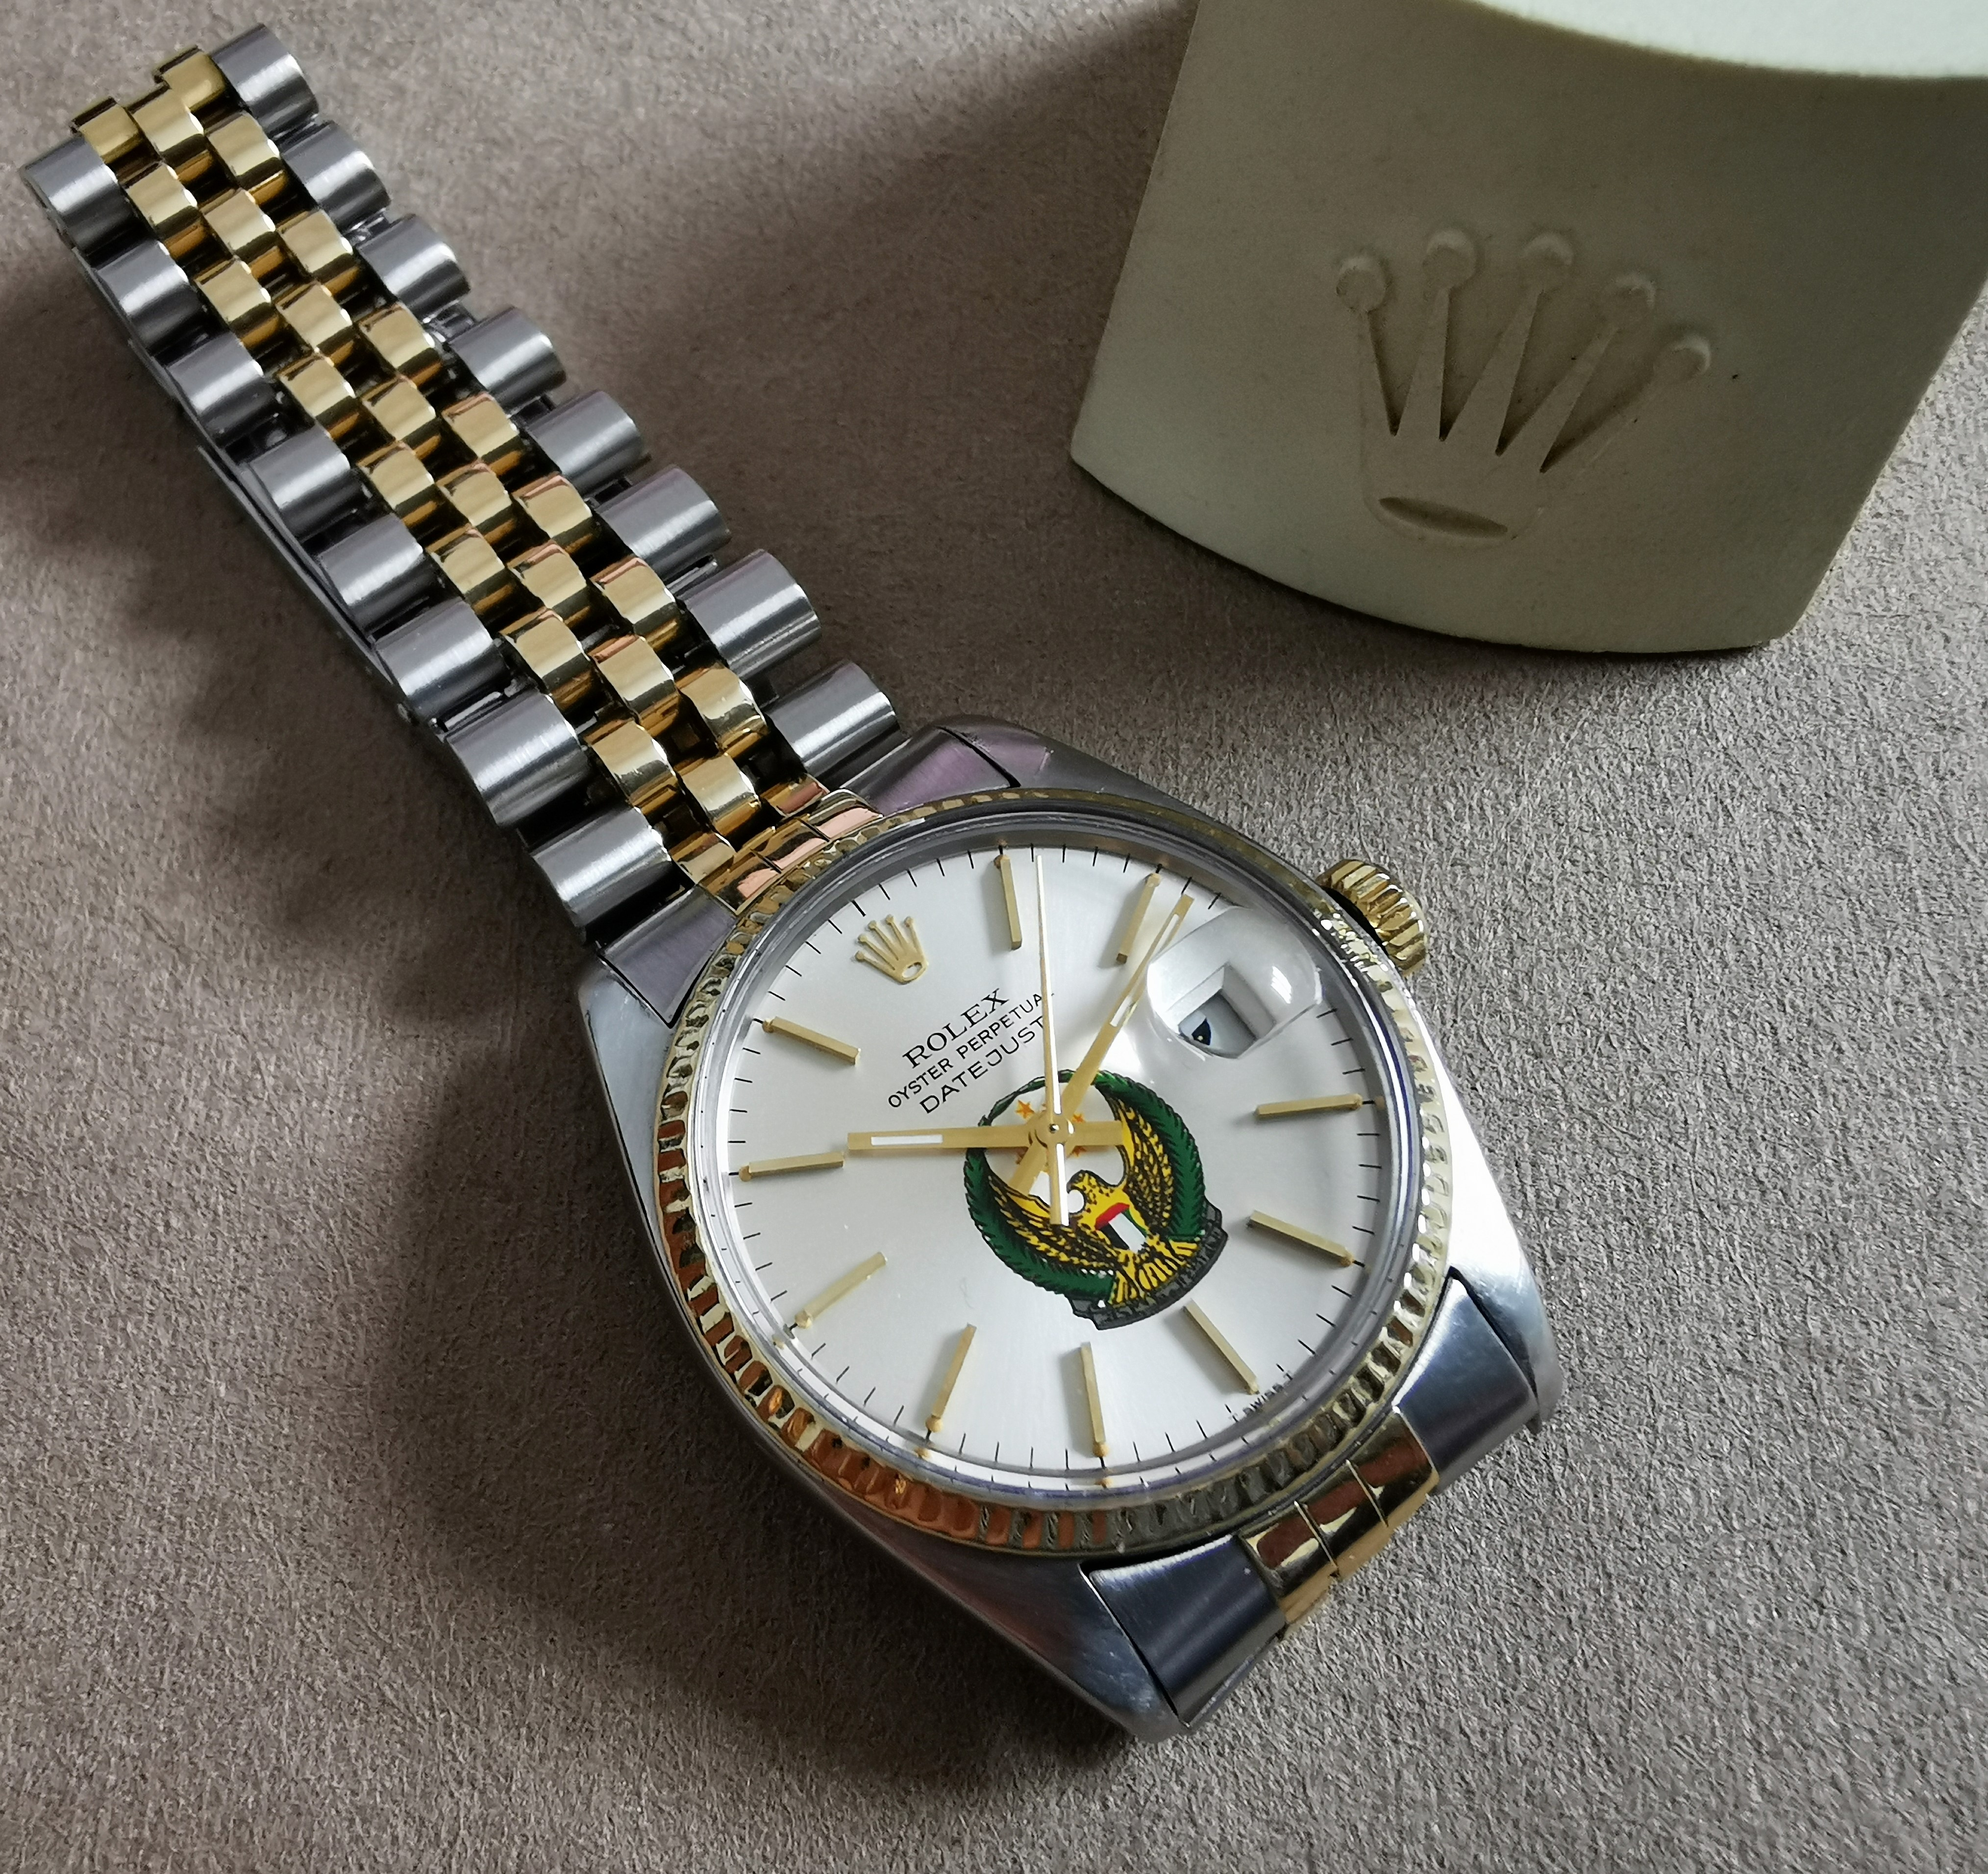 Rolex Datejust Rare UAE Datejust 16013 steel and 18 kt gold jubilee | San Giorgio a Cremano